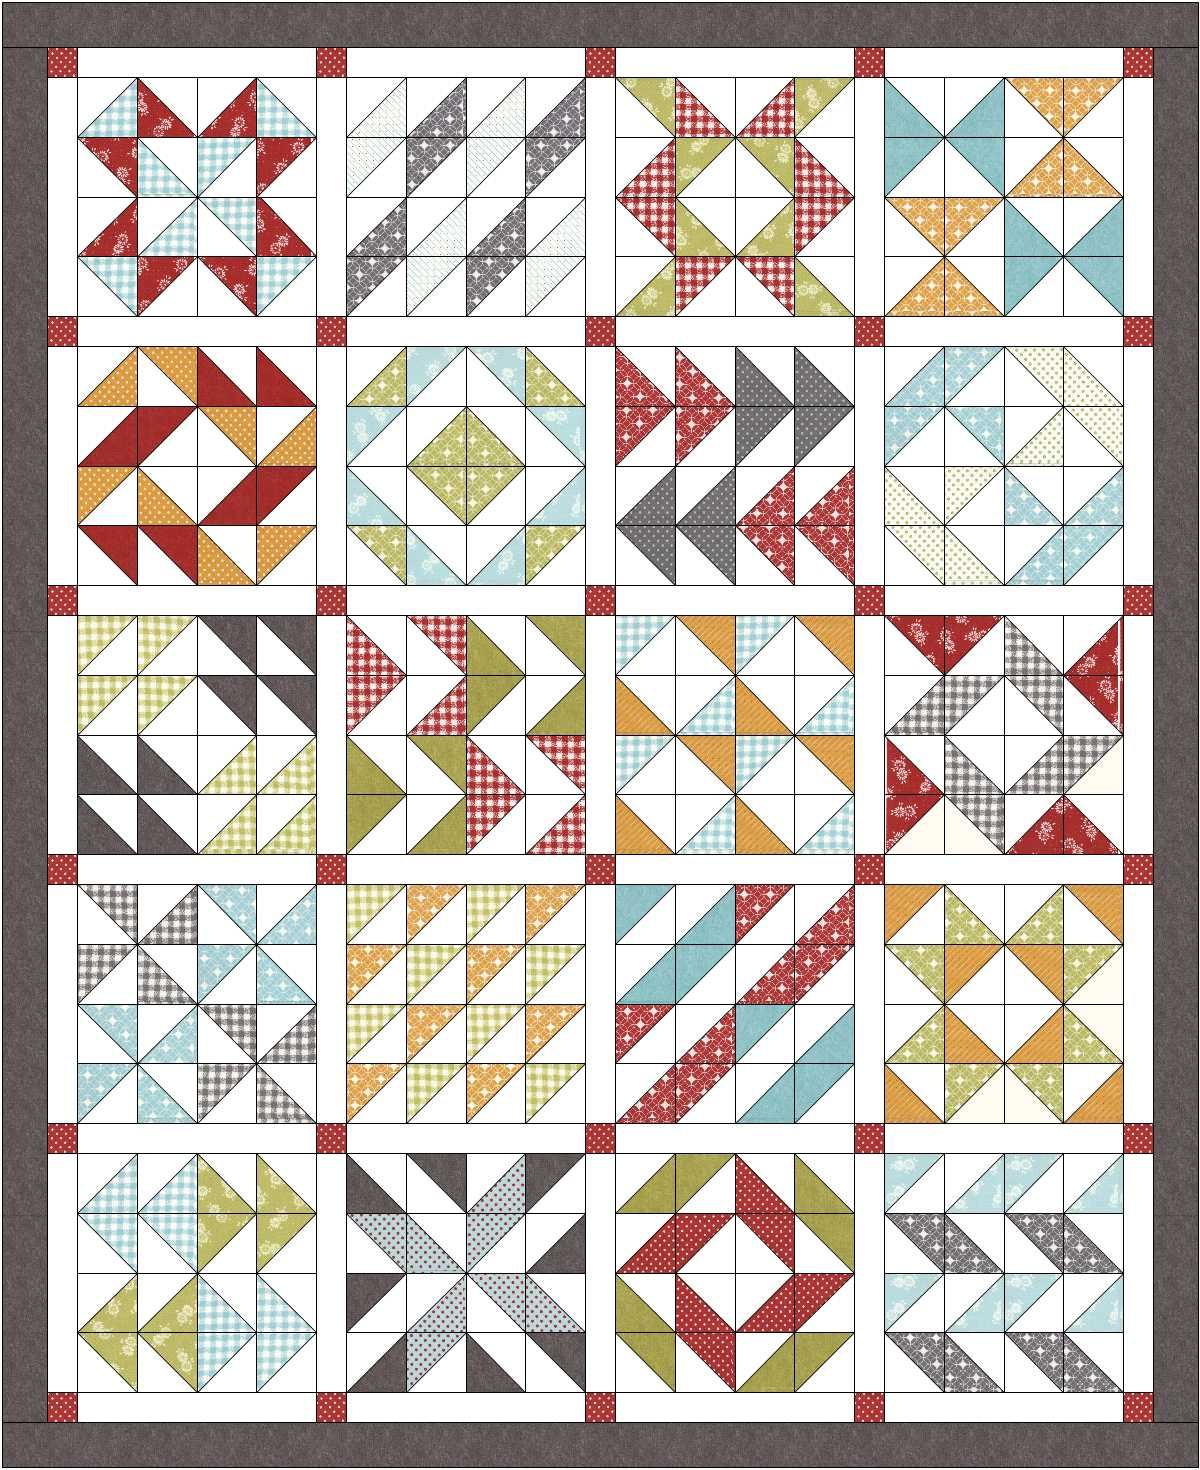 layer-cake-sampler-quilt1 (1).jpg